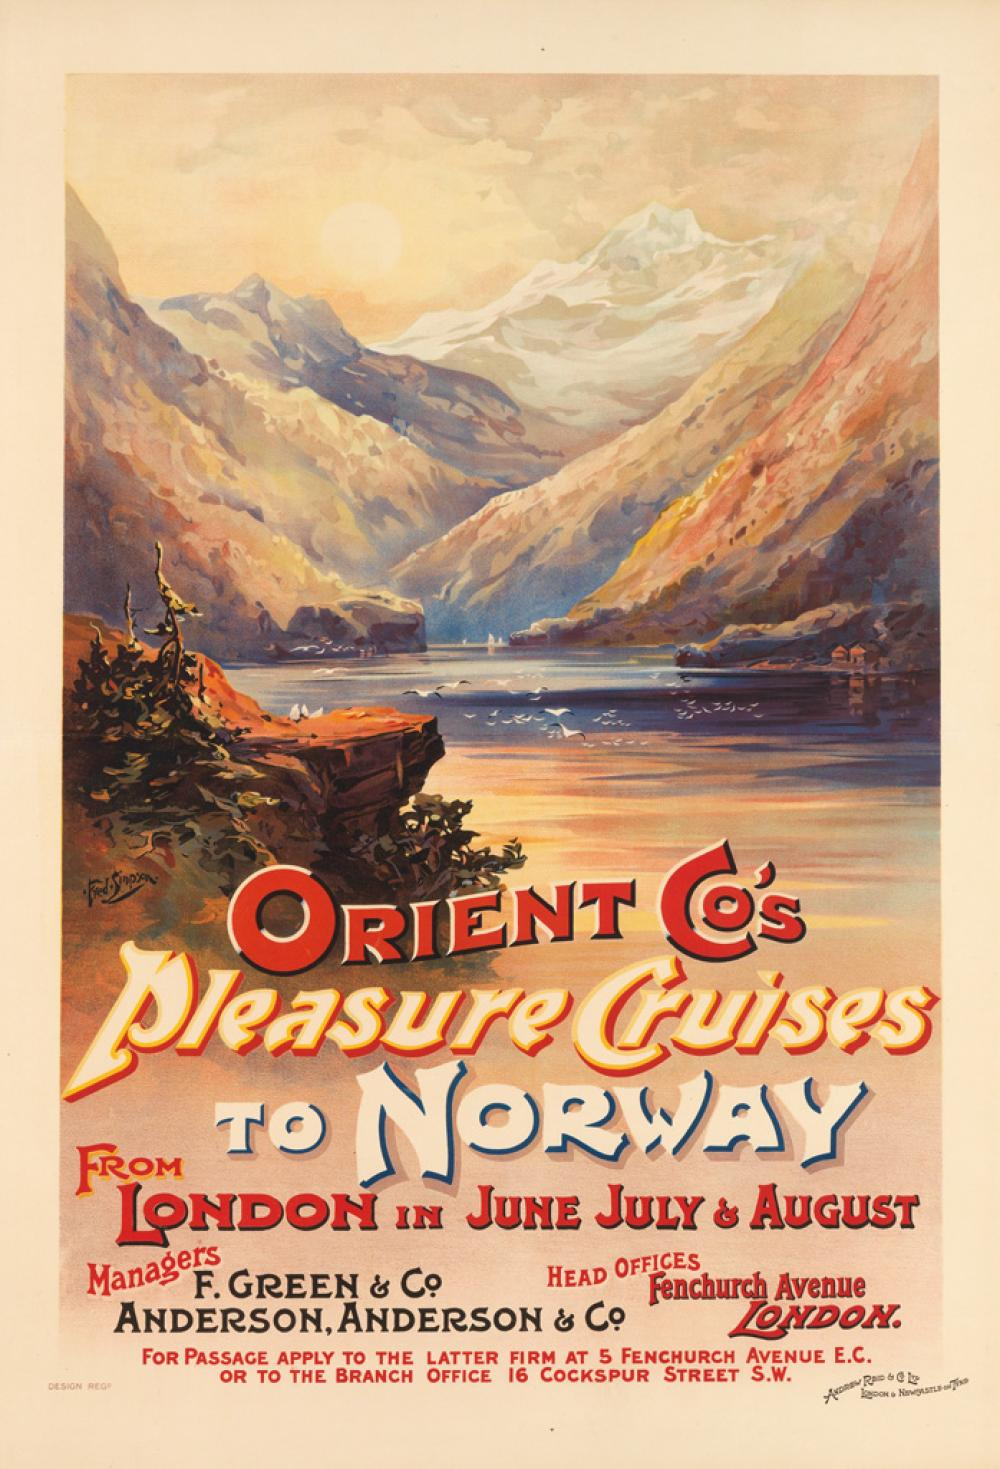 FRED SIMPSON (DATES UNKNOWN). ORIENT CO'S PLEASURE CRUISES TO NORWAY. Circa 1898. 39x27 inches, 101x68 cm. Andrew Reid & Co. Ltd., New